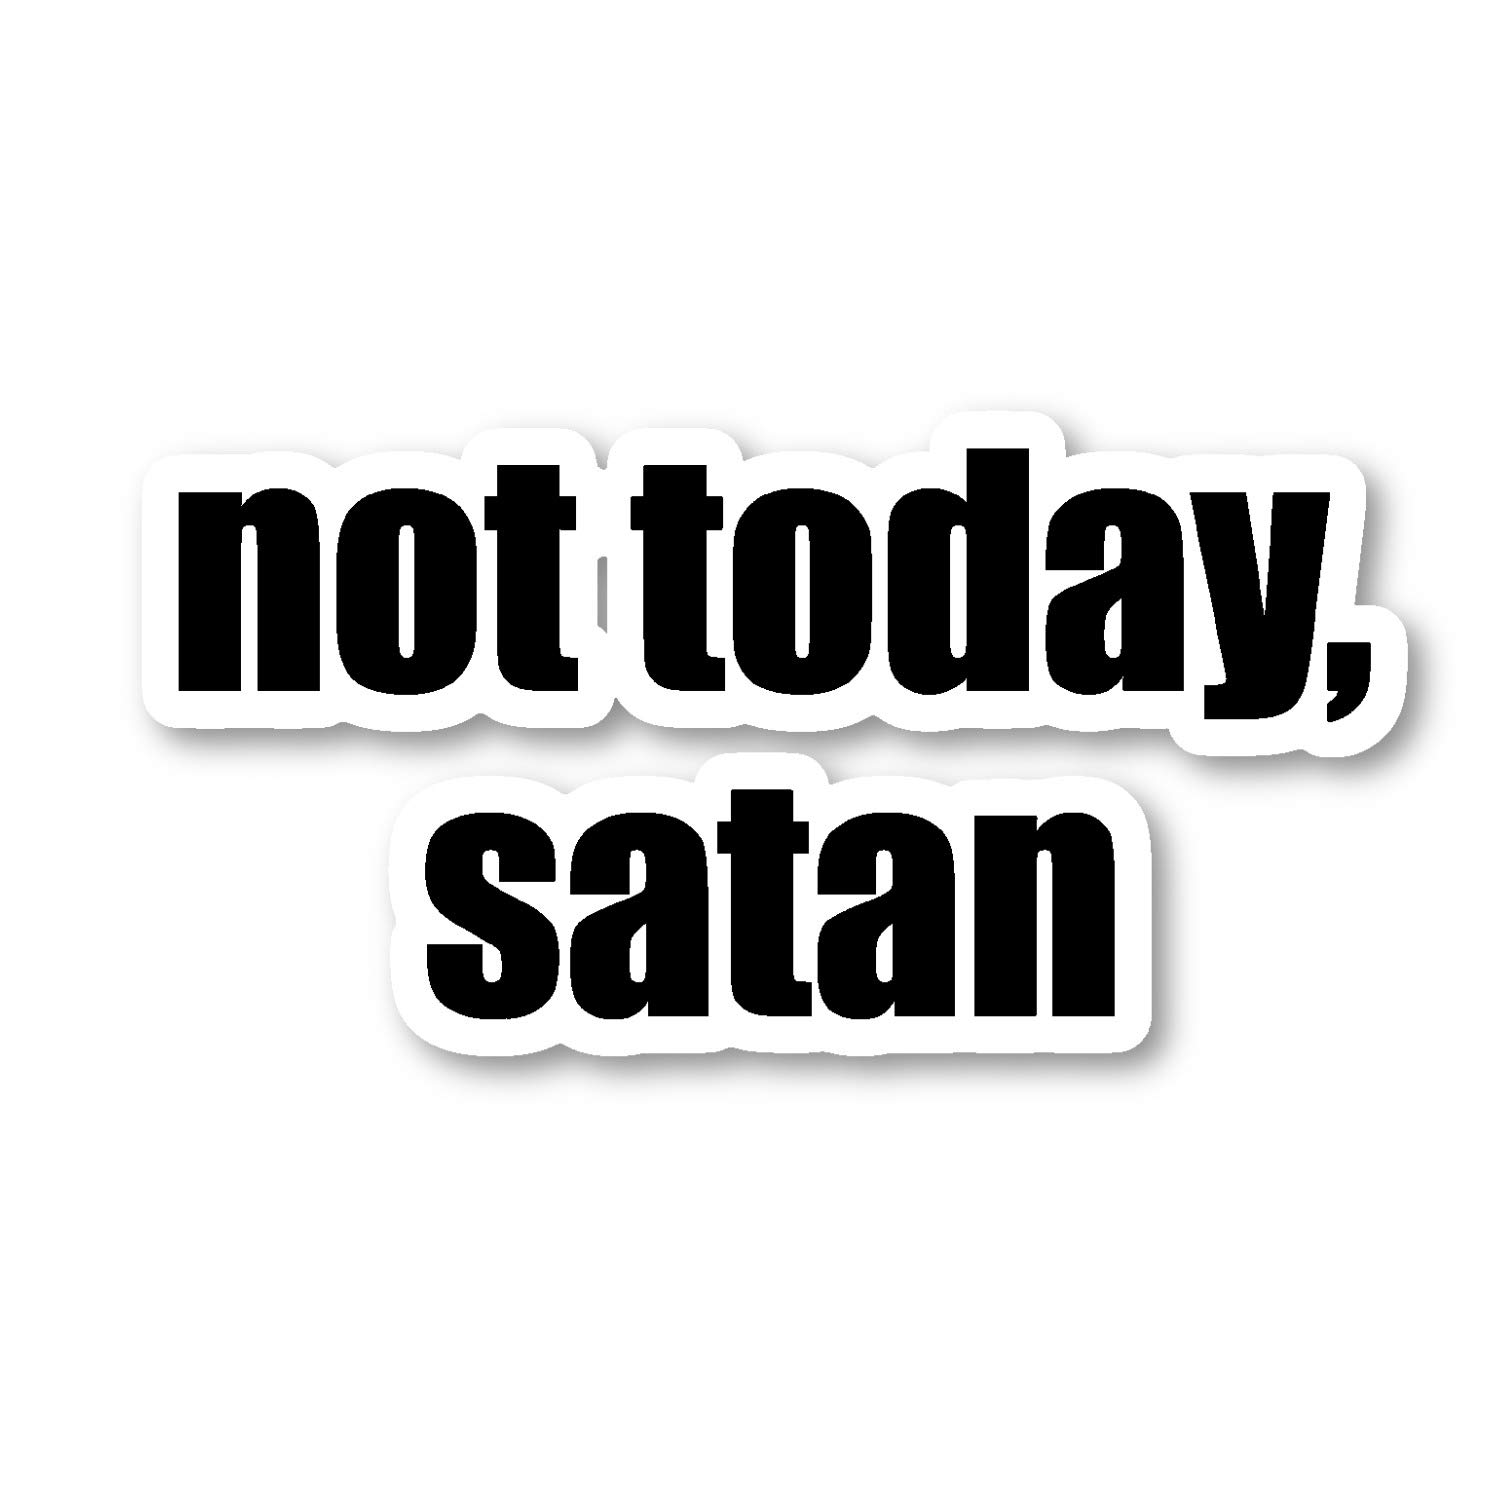 Amazon com not today satan sticker funny quotes stickers laptop stickers 2 5 vinyl decal laptop phone tablet vinyl decal sticker s4231 computers